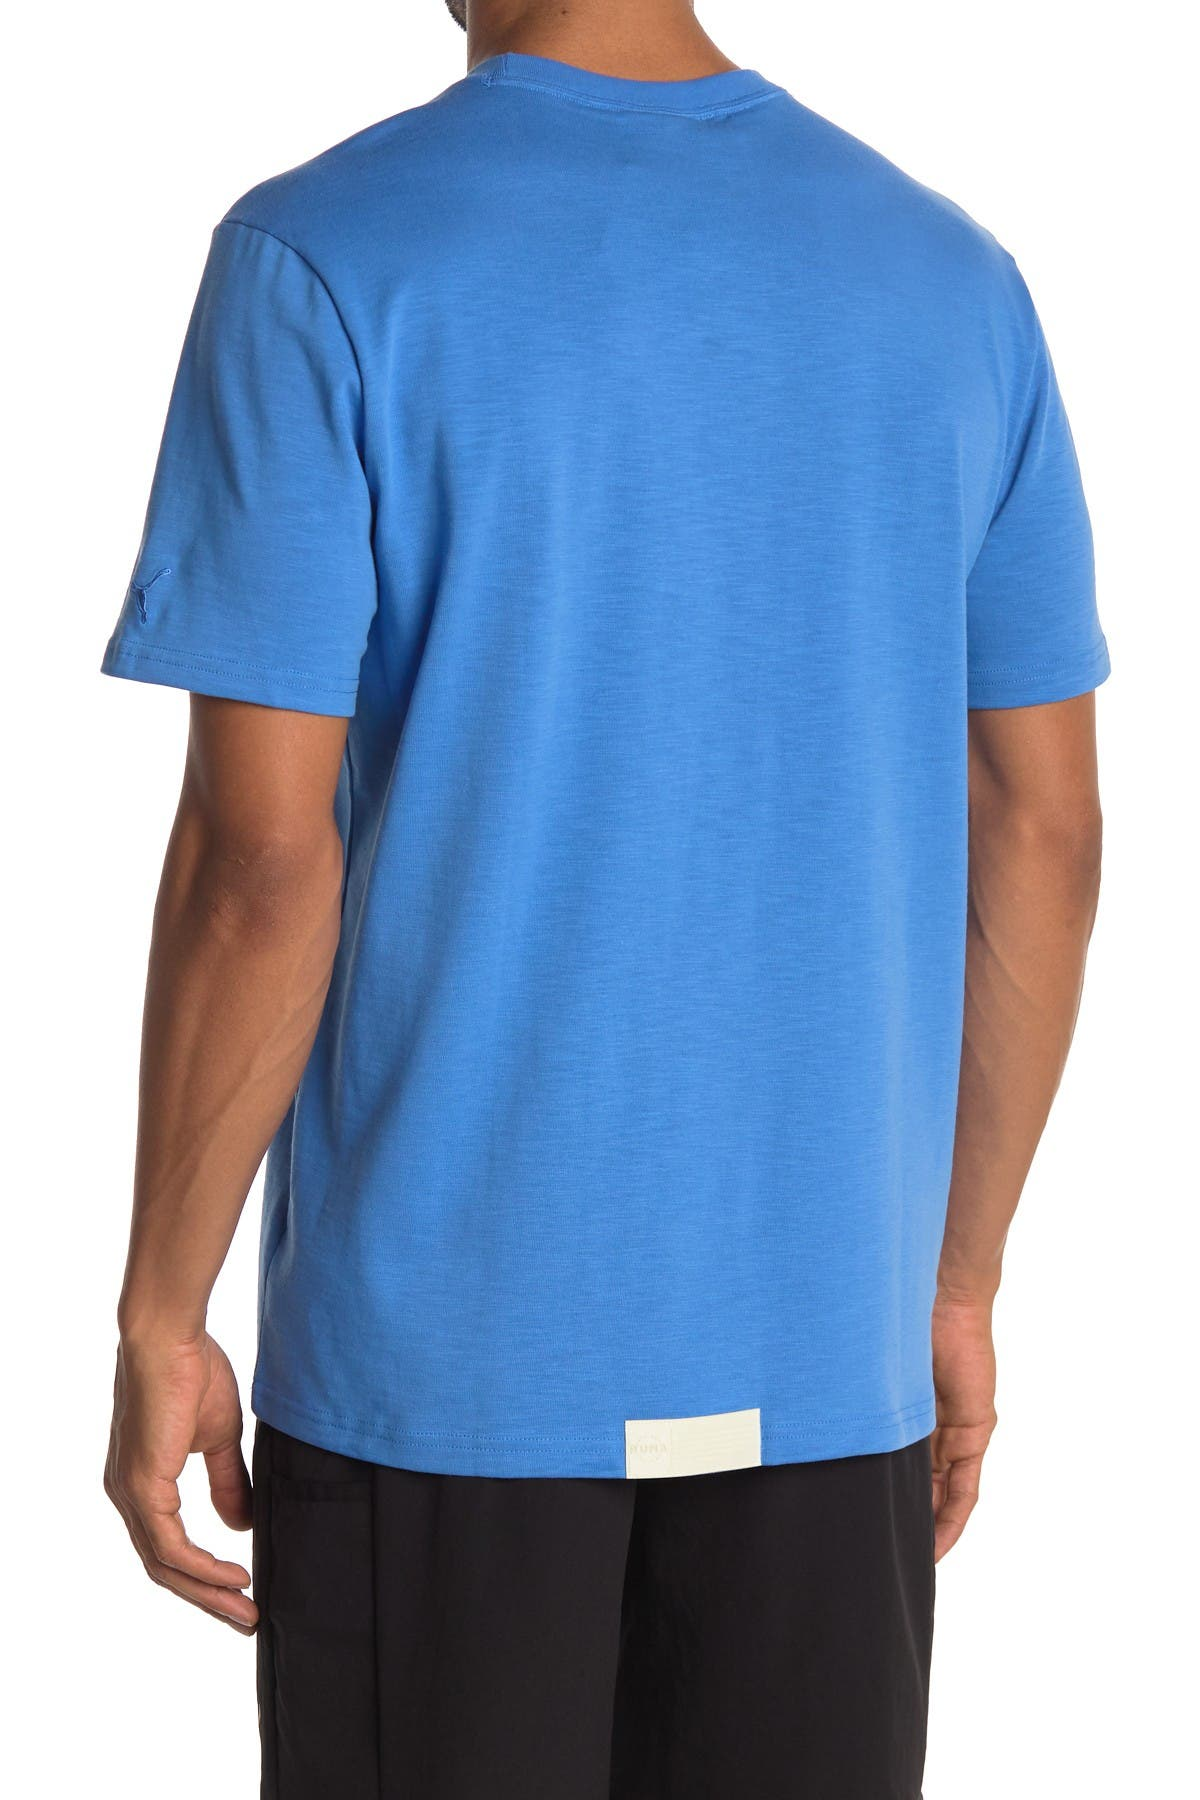 Image of PUMA Pull-Up Short Sleeve Tee